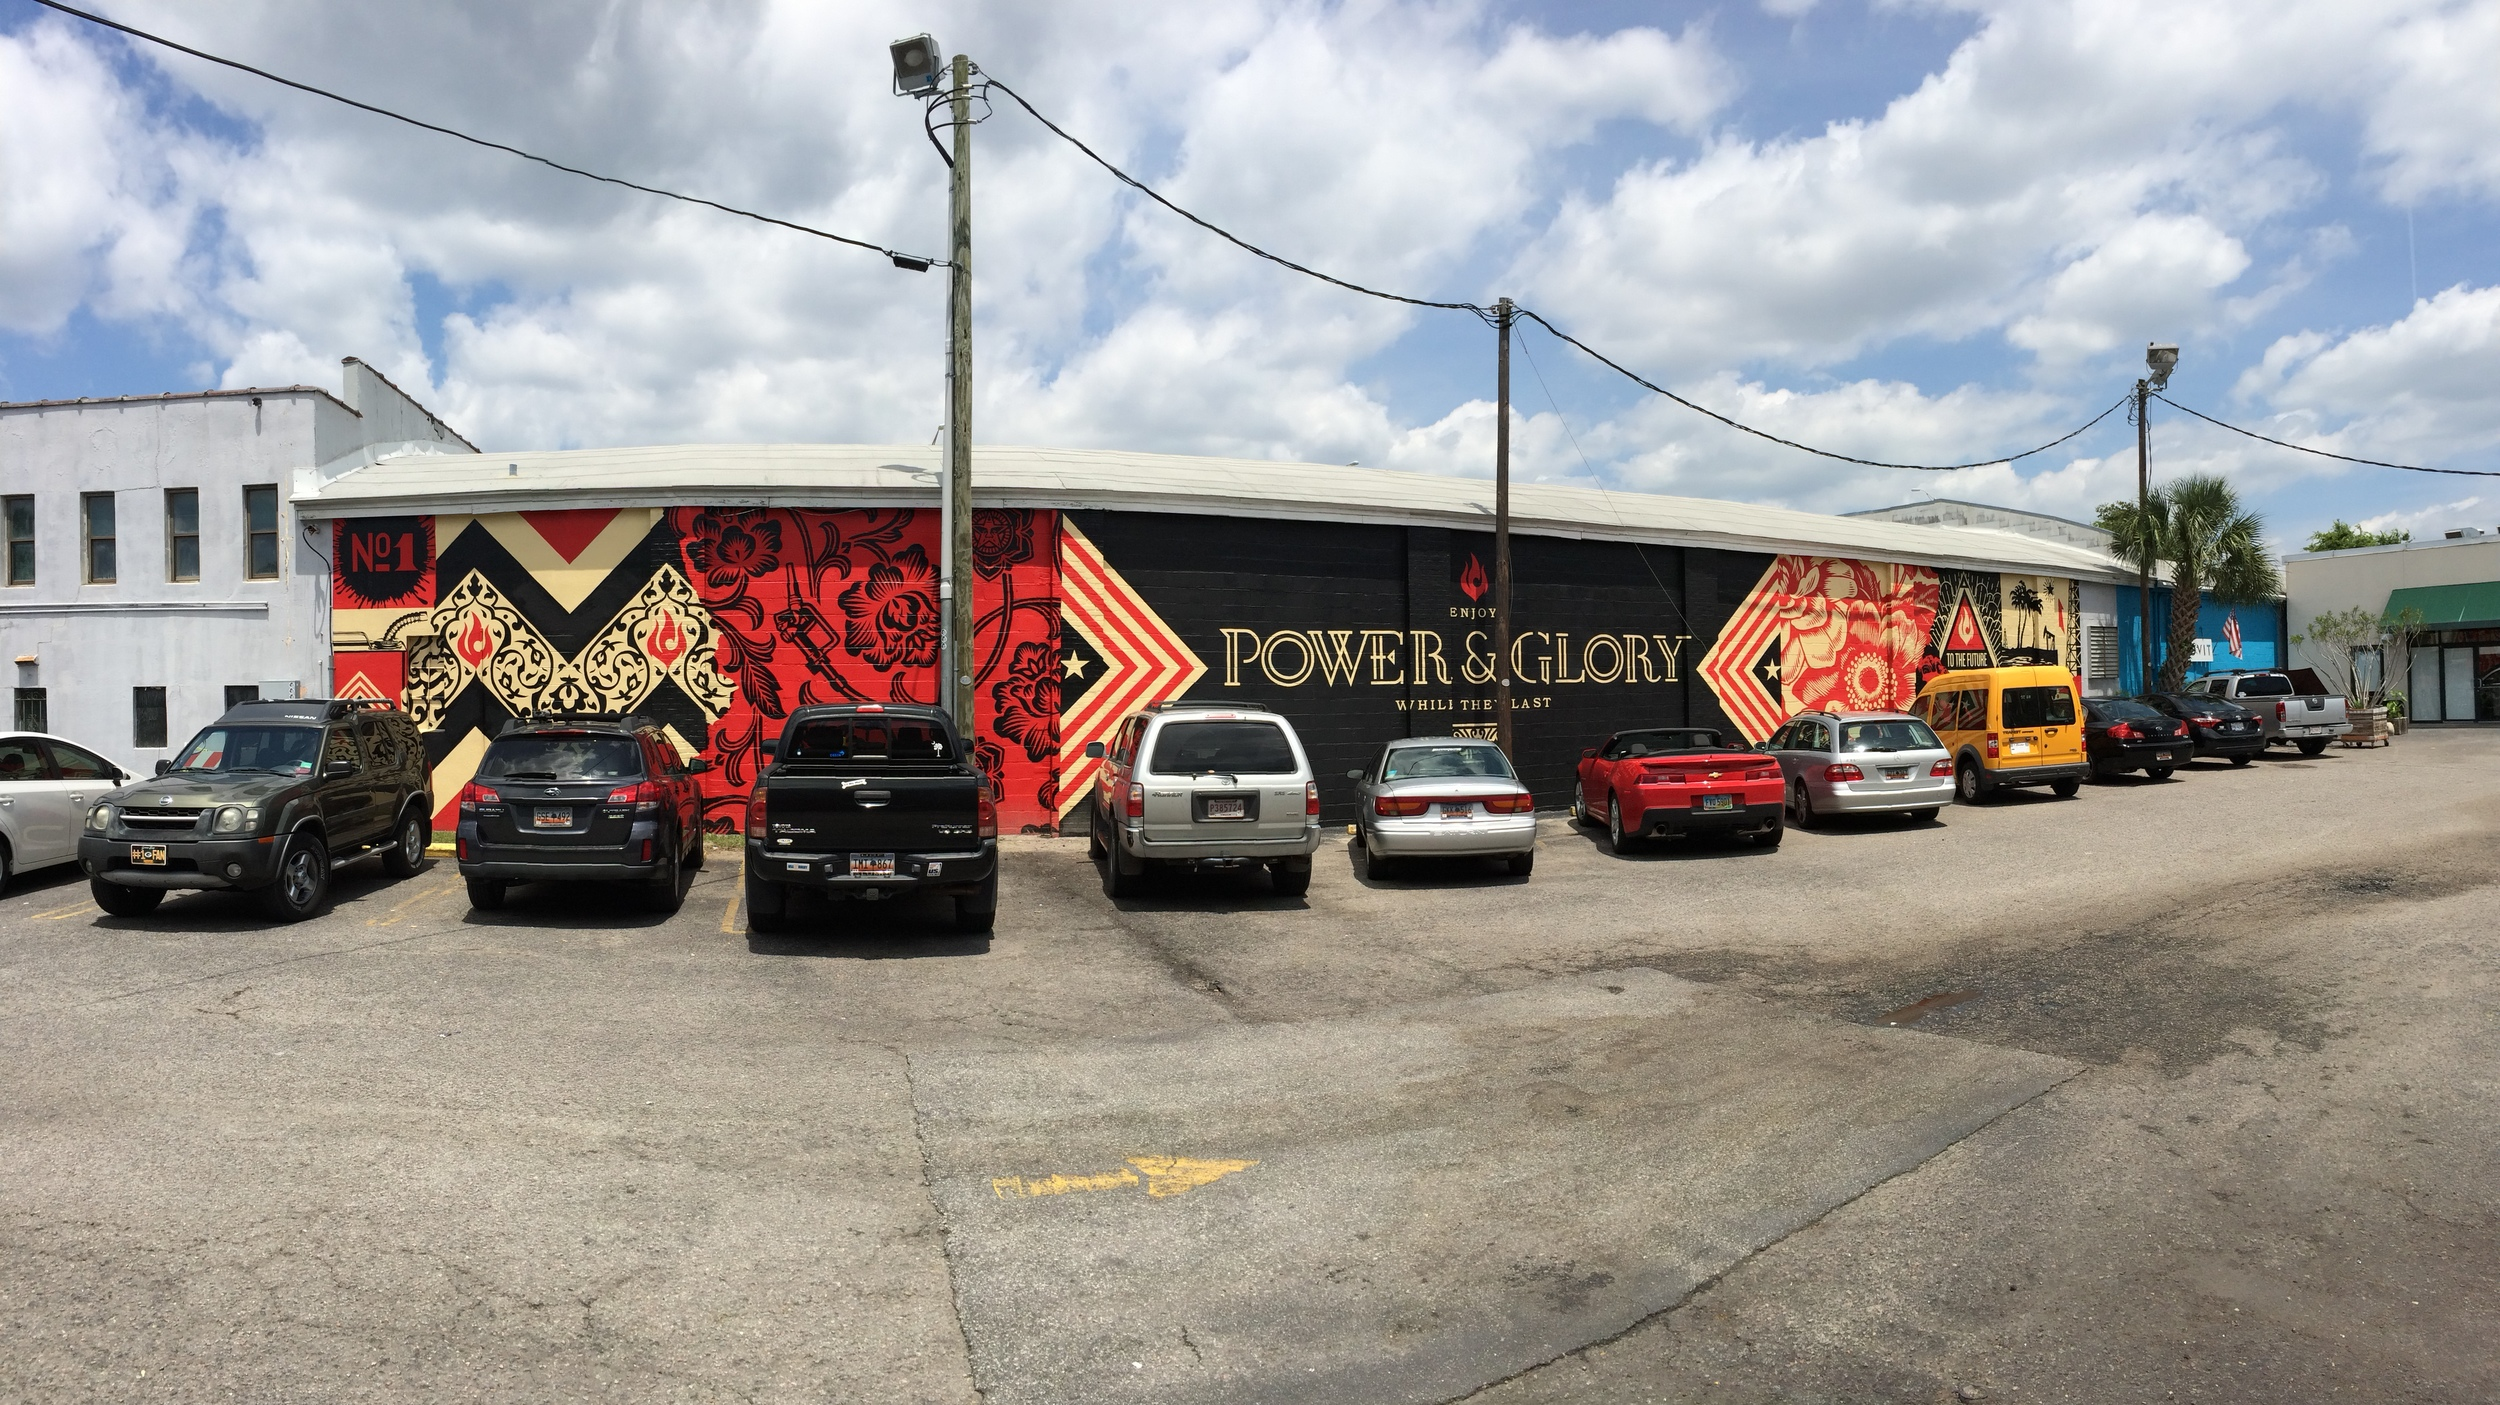 Power & Glory mural lining the parking lot outside of Butcher and Bee